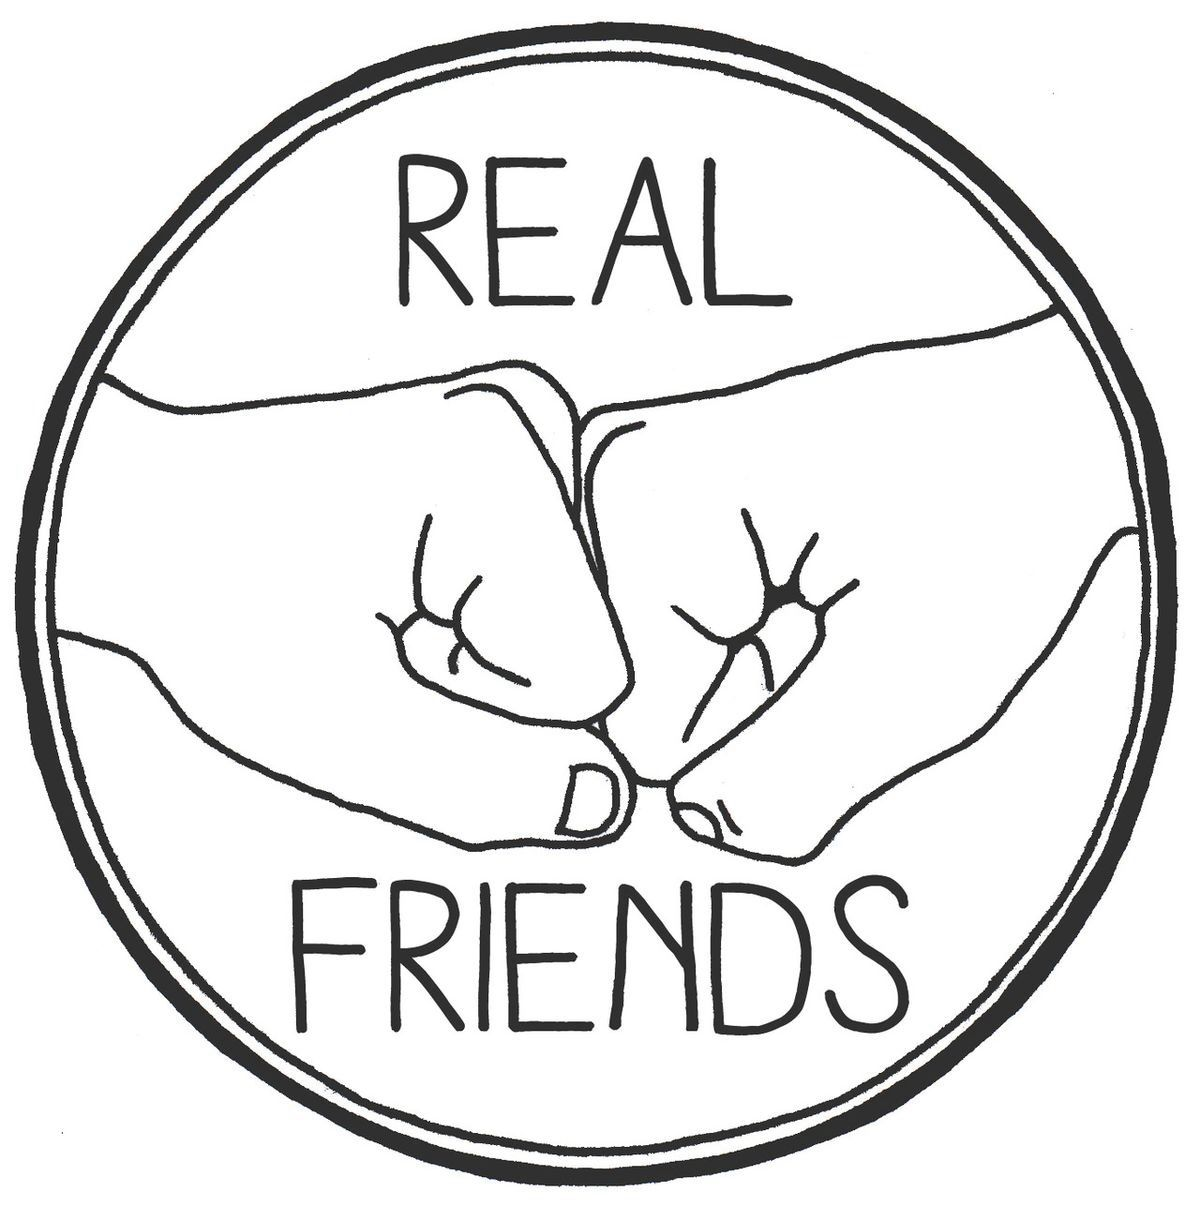 Real friends tumblr stickers cute stickers laptop stickers real friends tumblr png